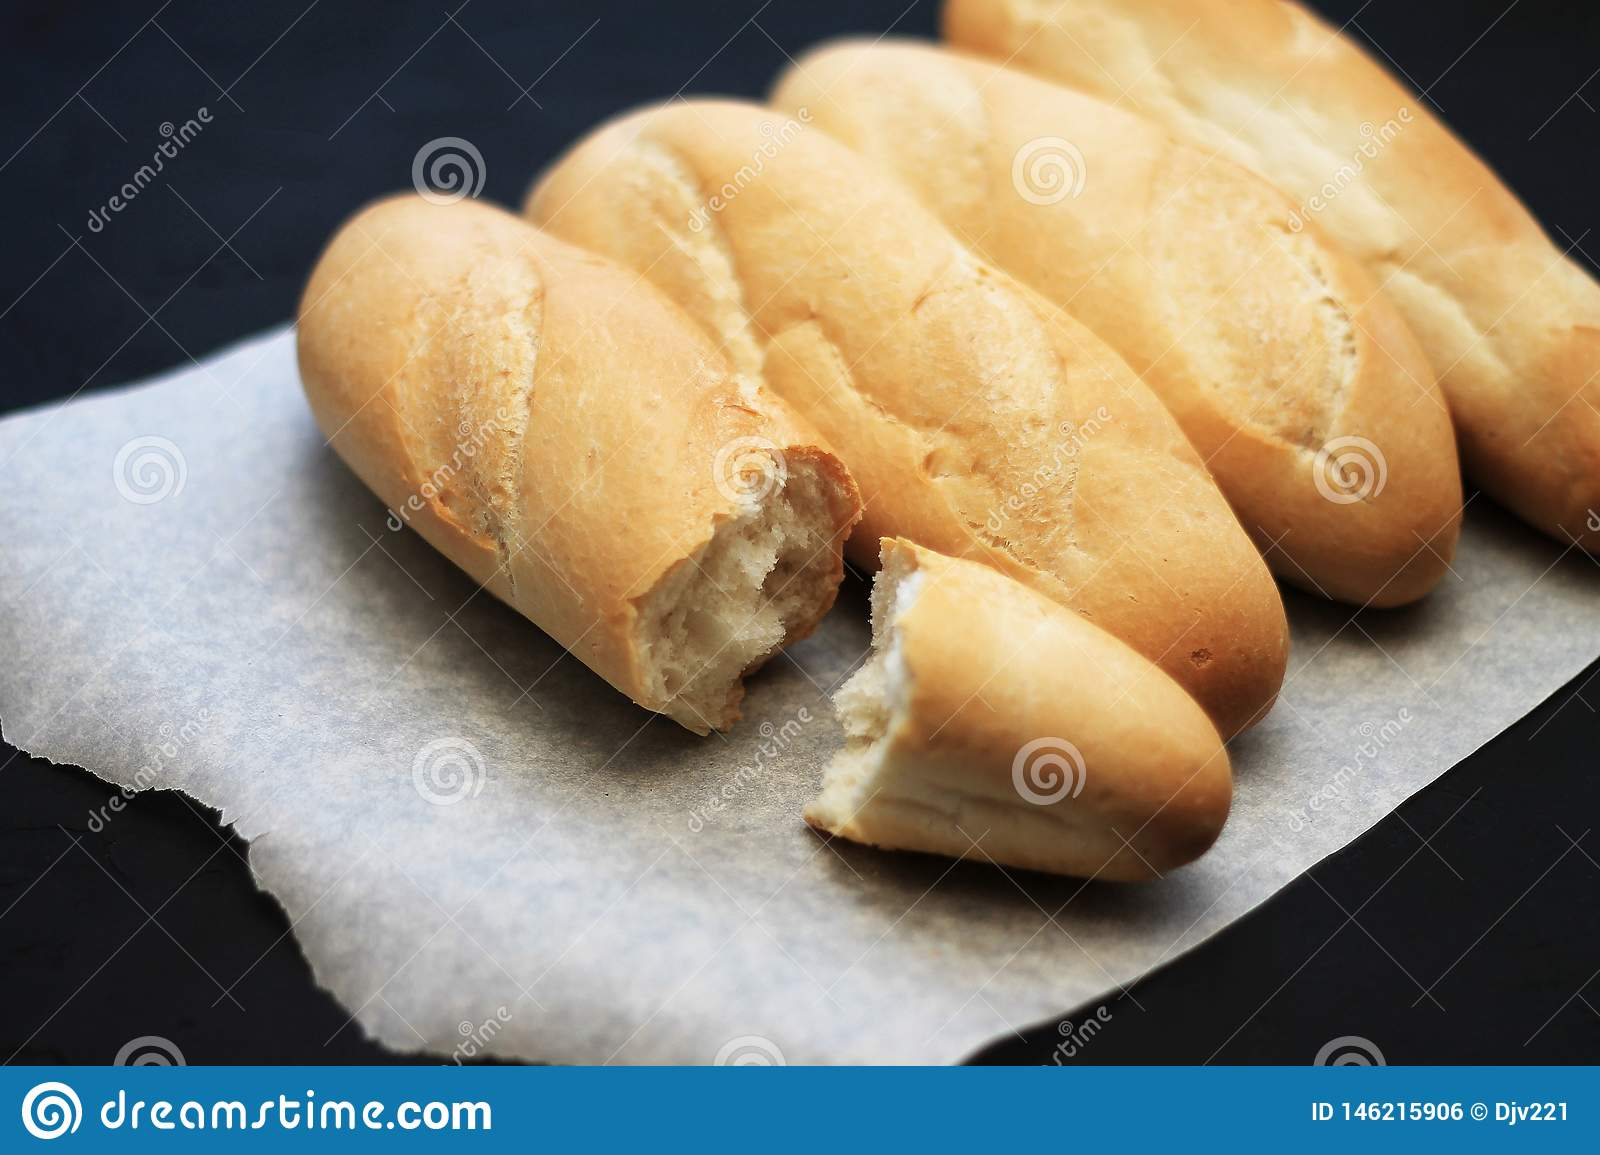 French baguettes, loaves on a black wooden background